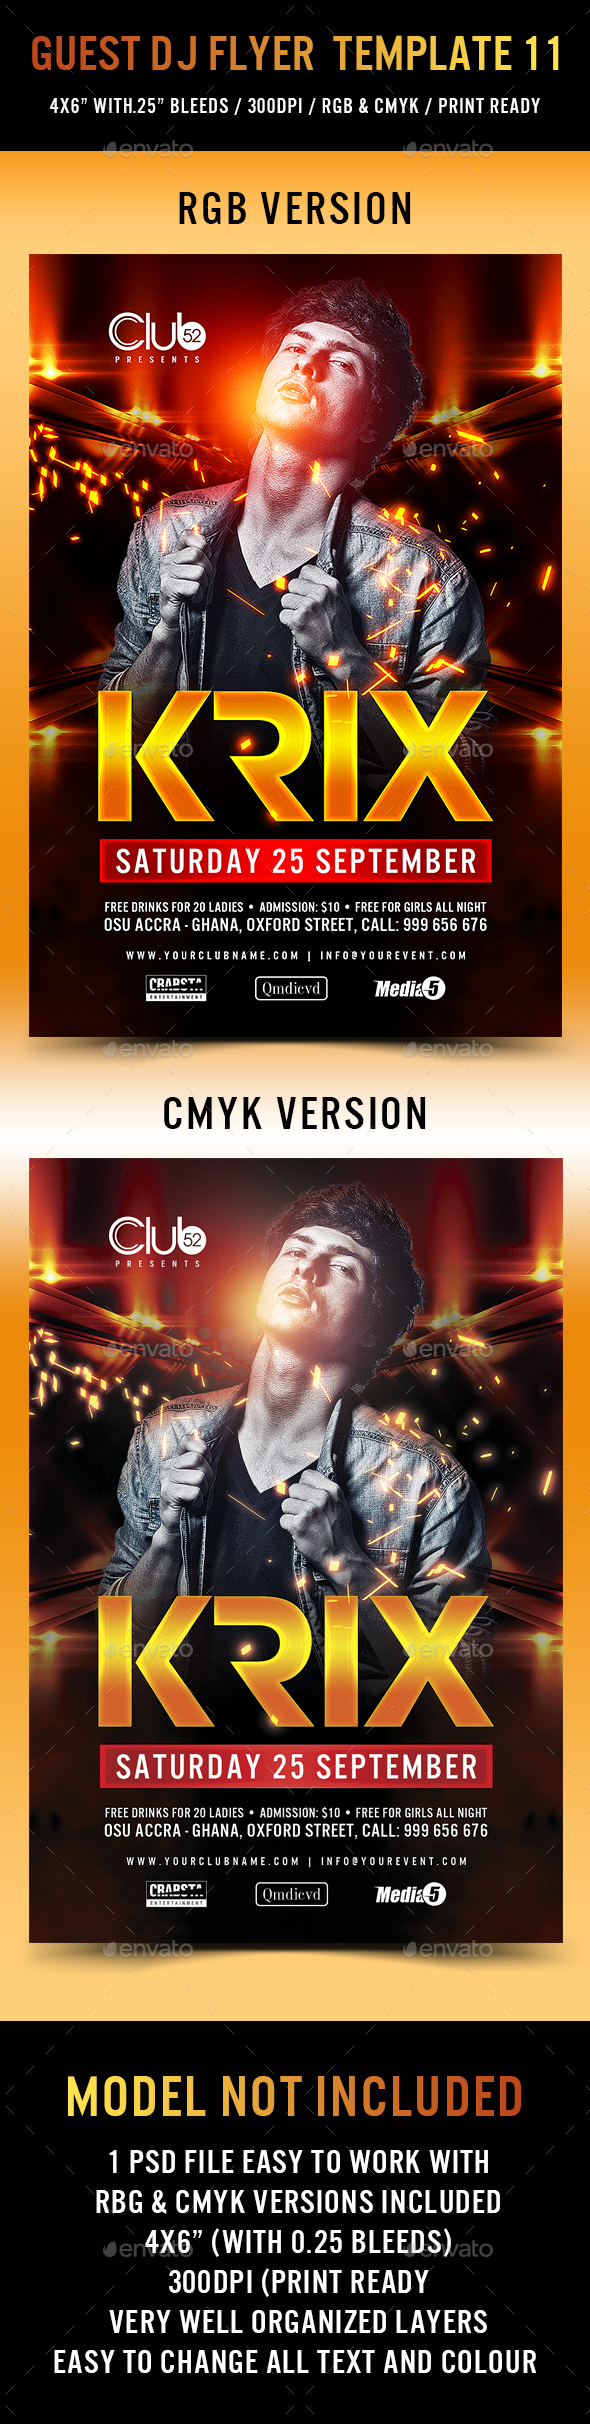 Guest DJ Flyer Template 11 - Events Flyers